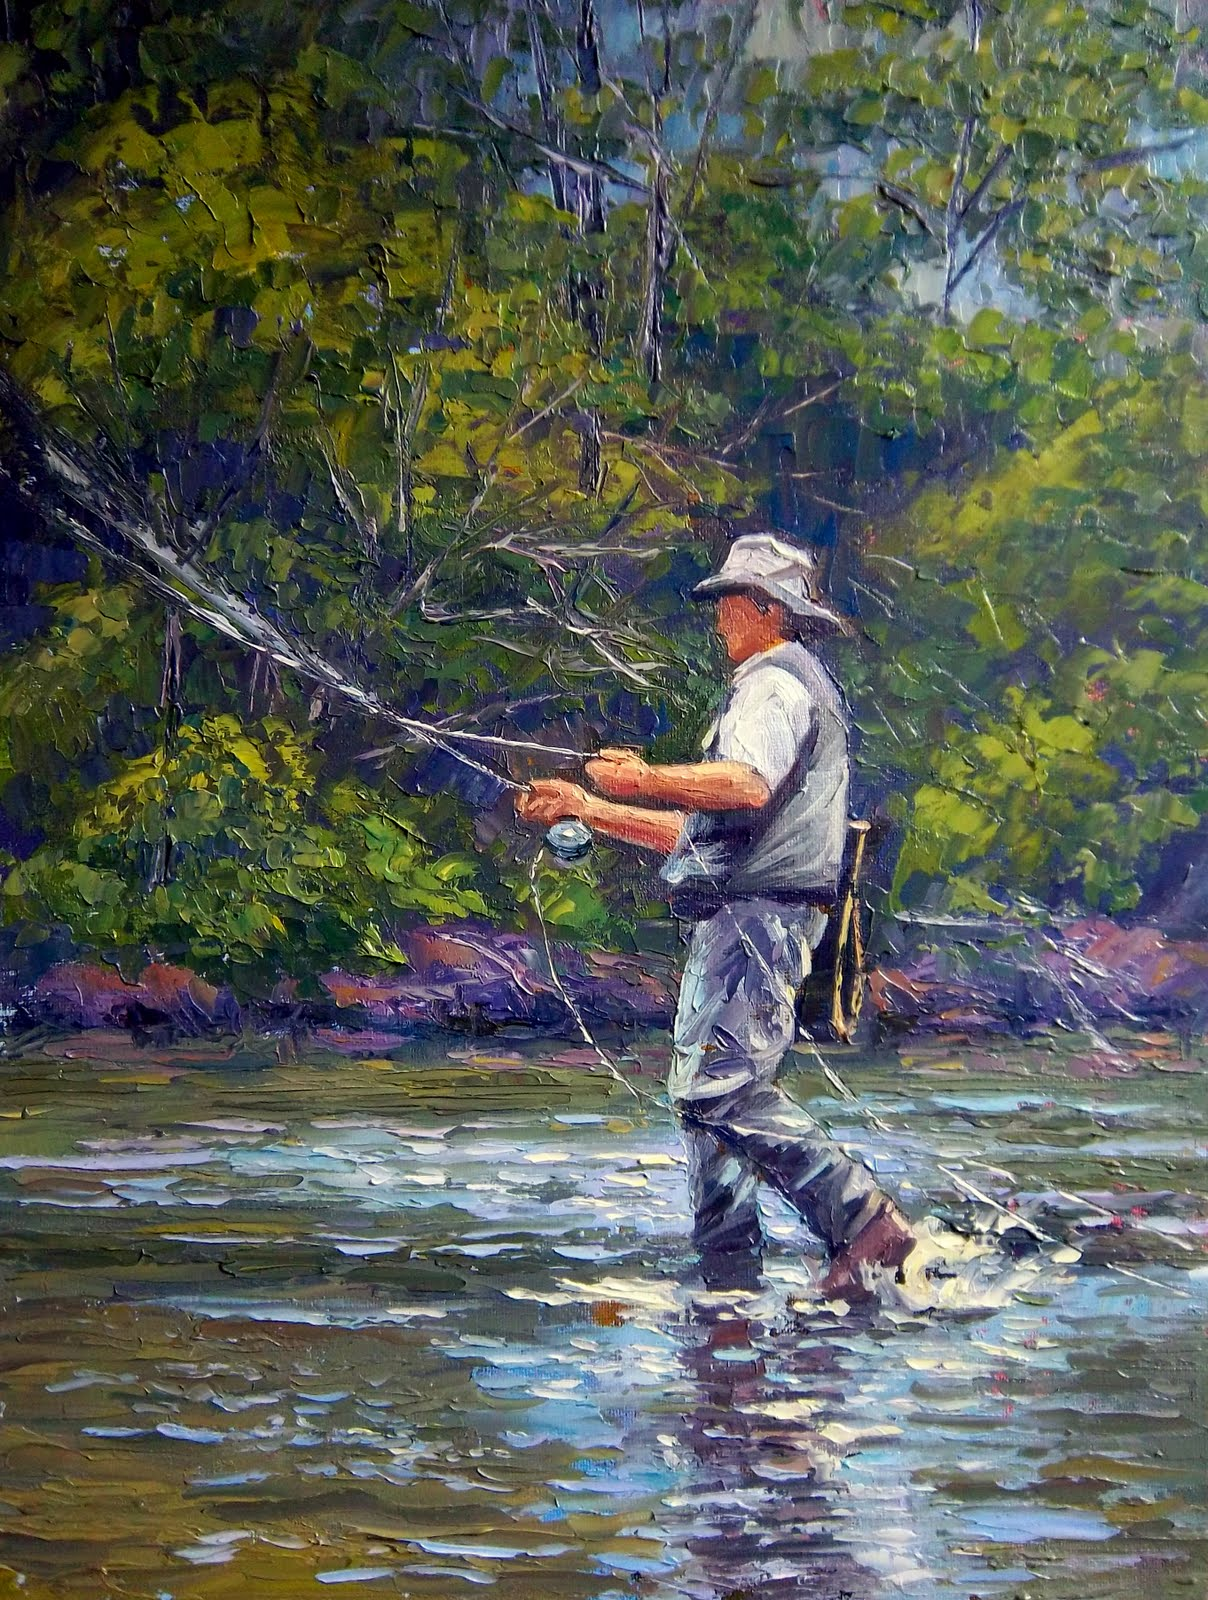 A painter 39 s journey june 2011 for Fly fishing near me